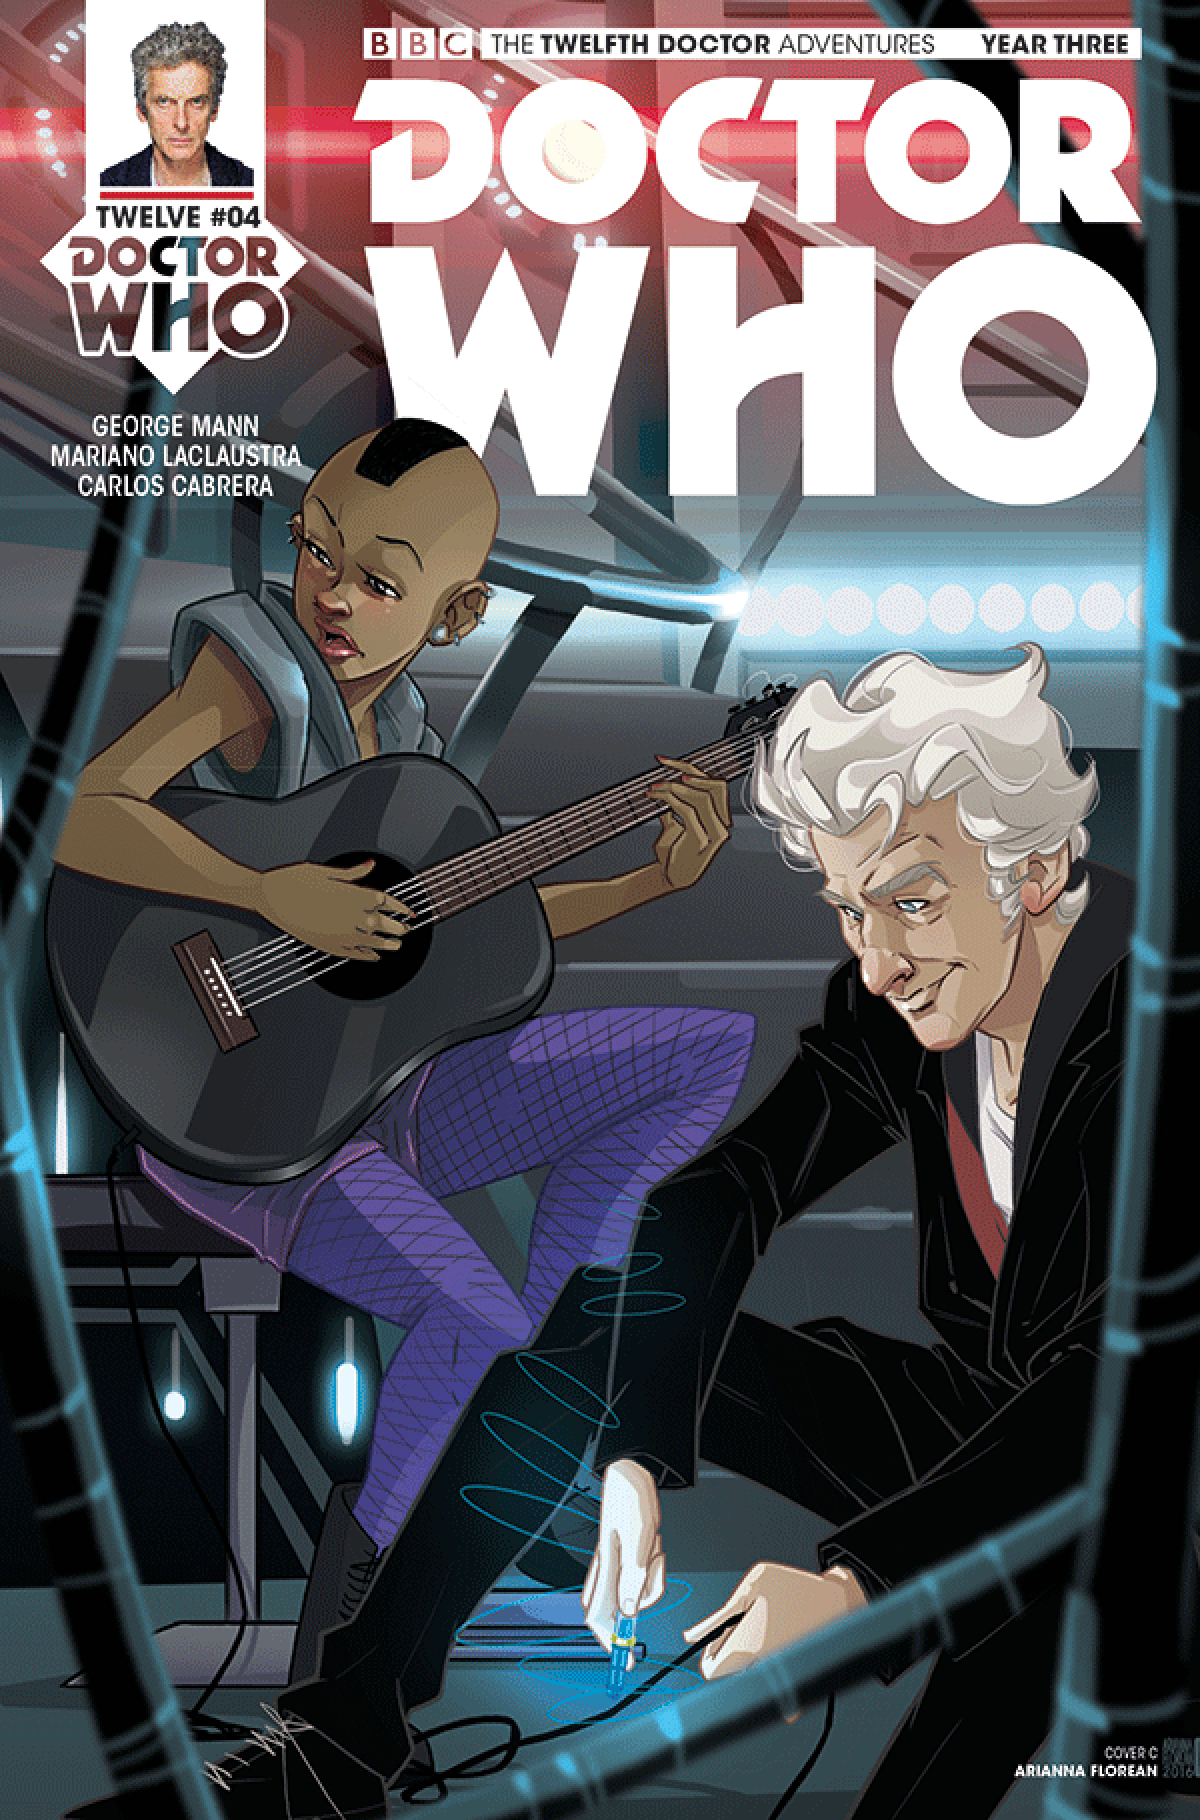 DOCTOR WHO 12TH YEAR THREE #4 CVR C FLOREAN